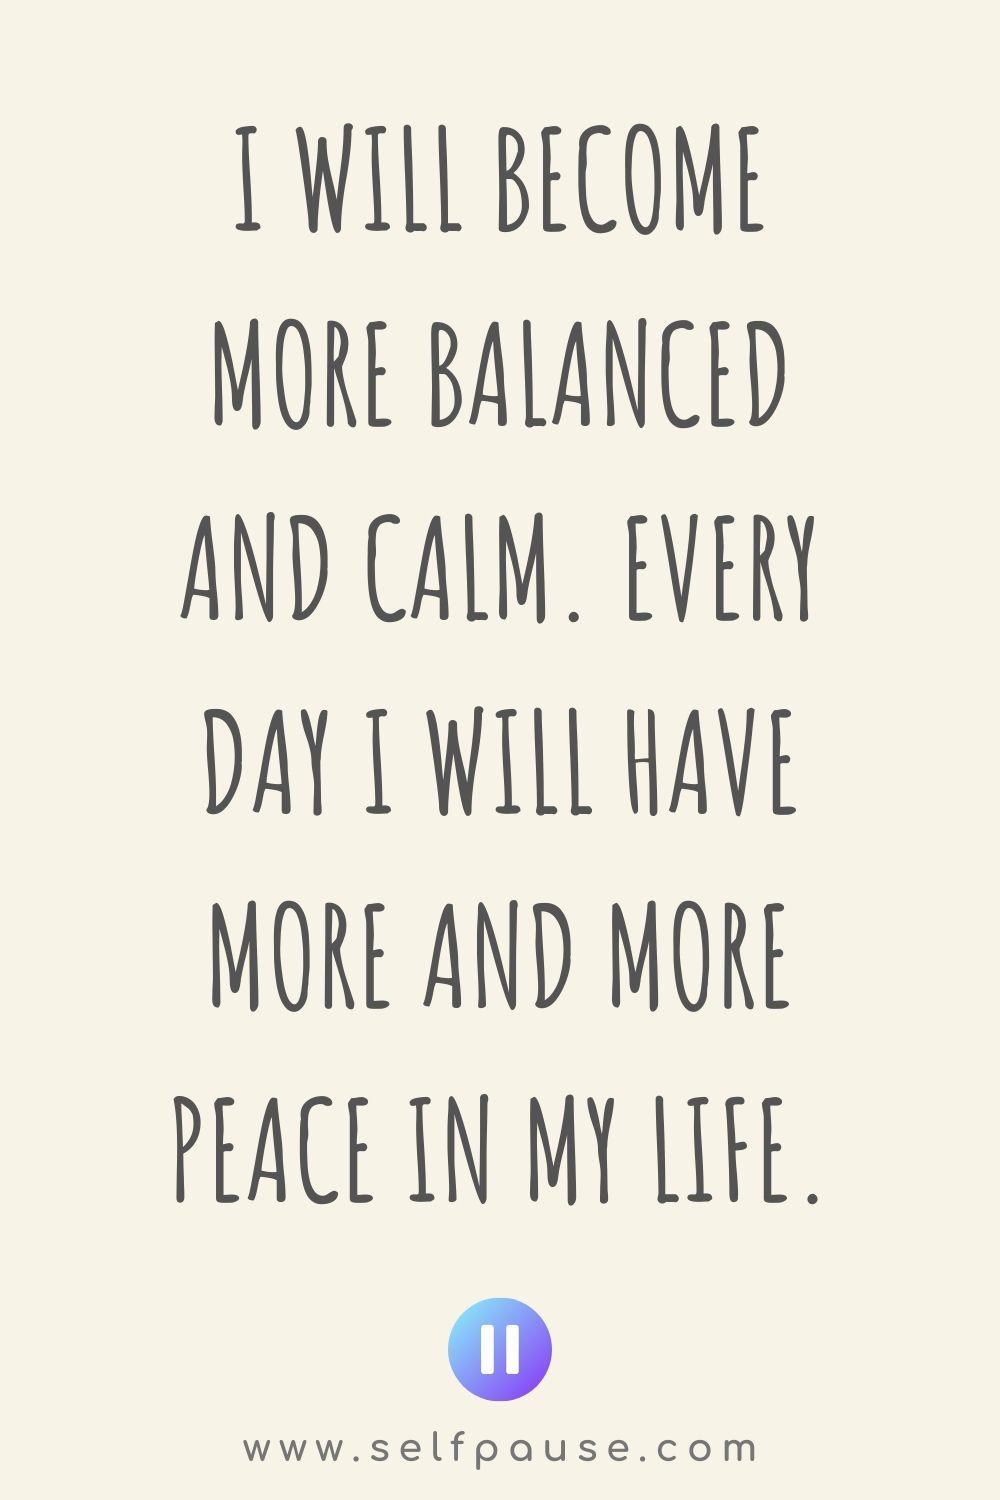 Funny Stress Quotes Stress Relaxation Affirmations - Selfpause